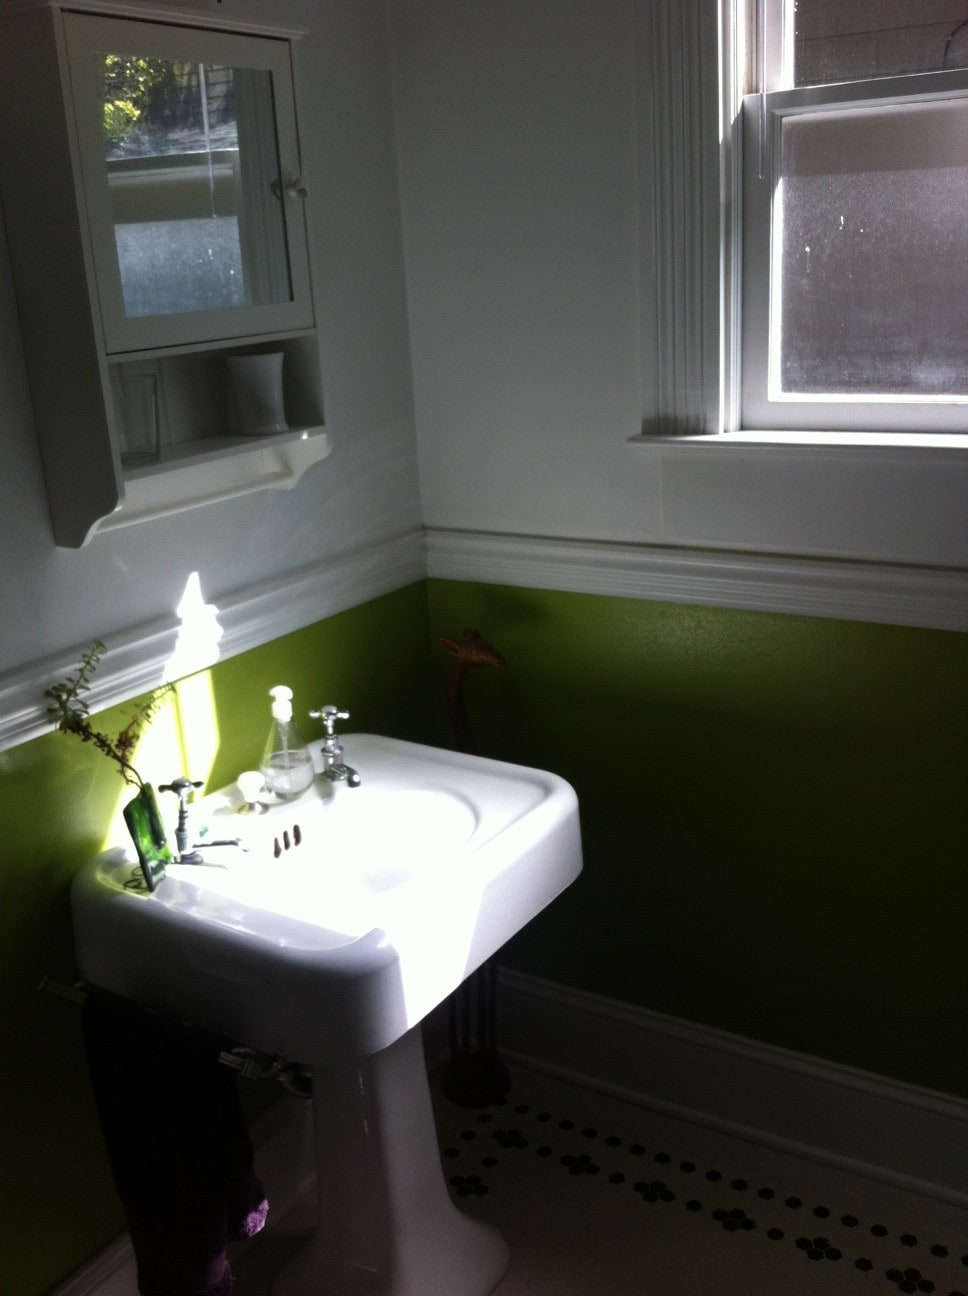 This is the original sink, from 1903!